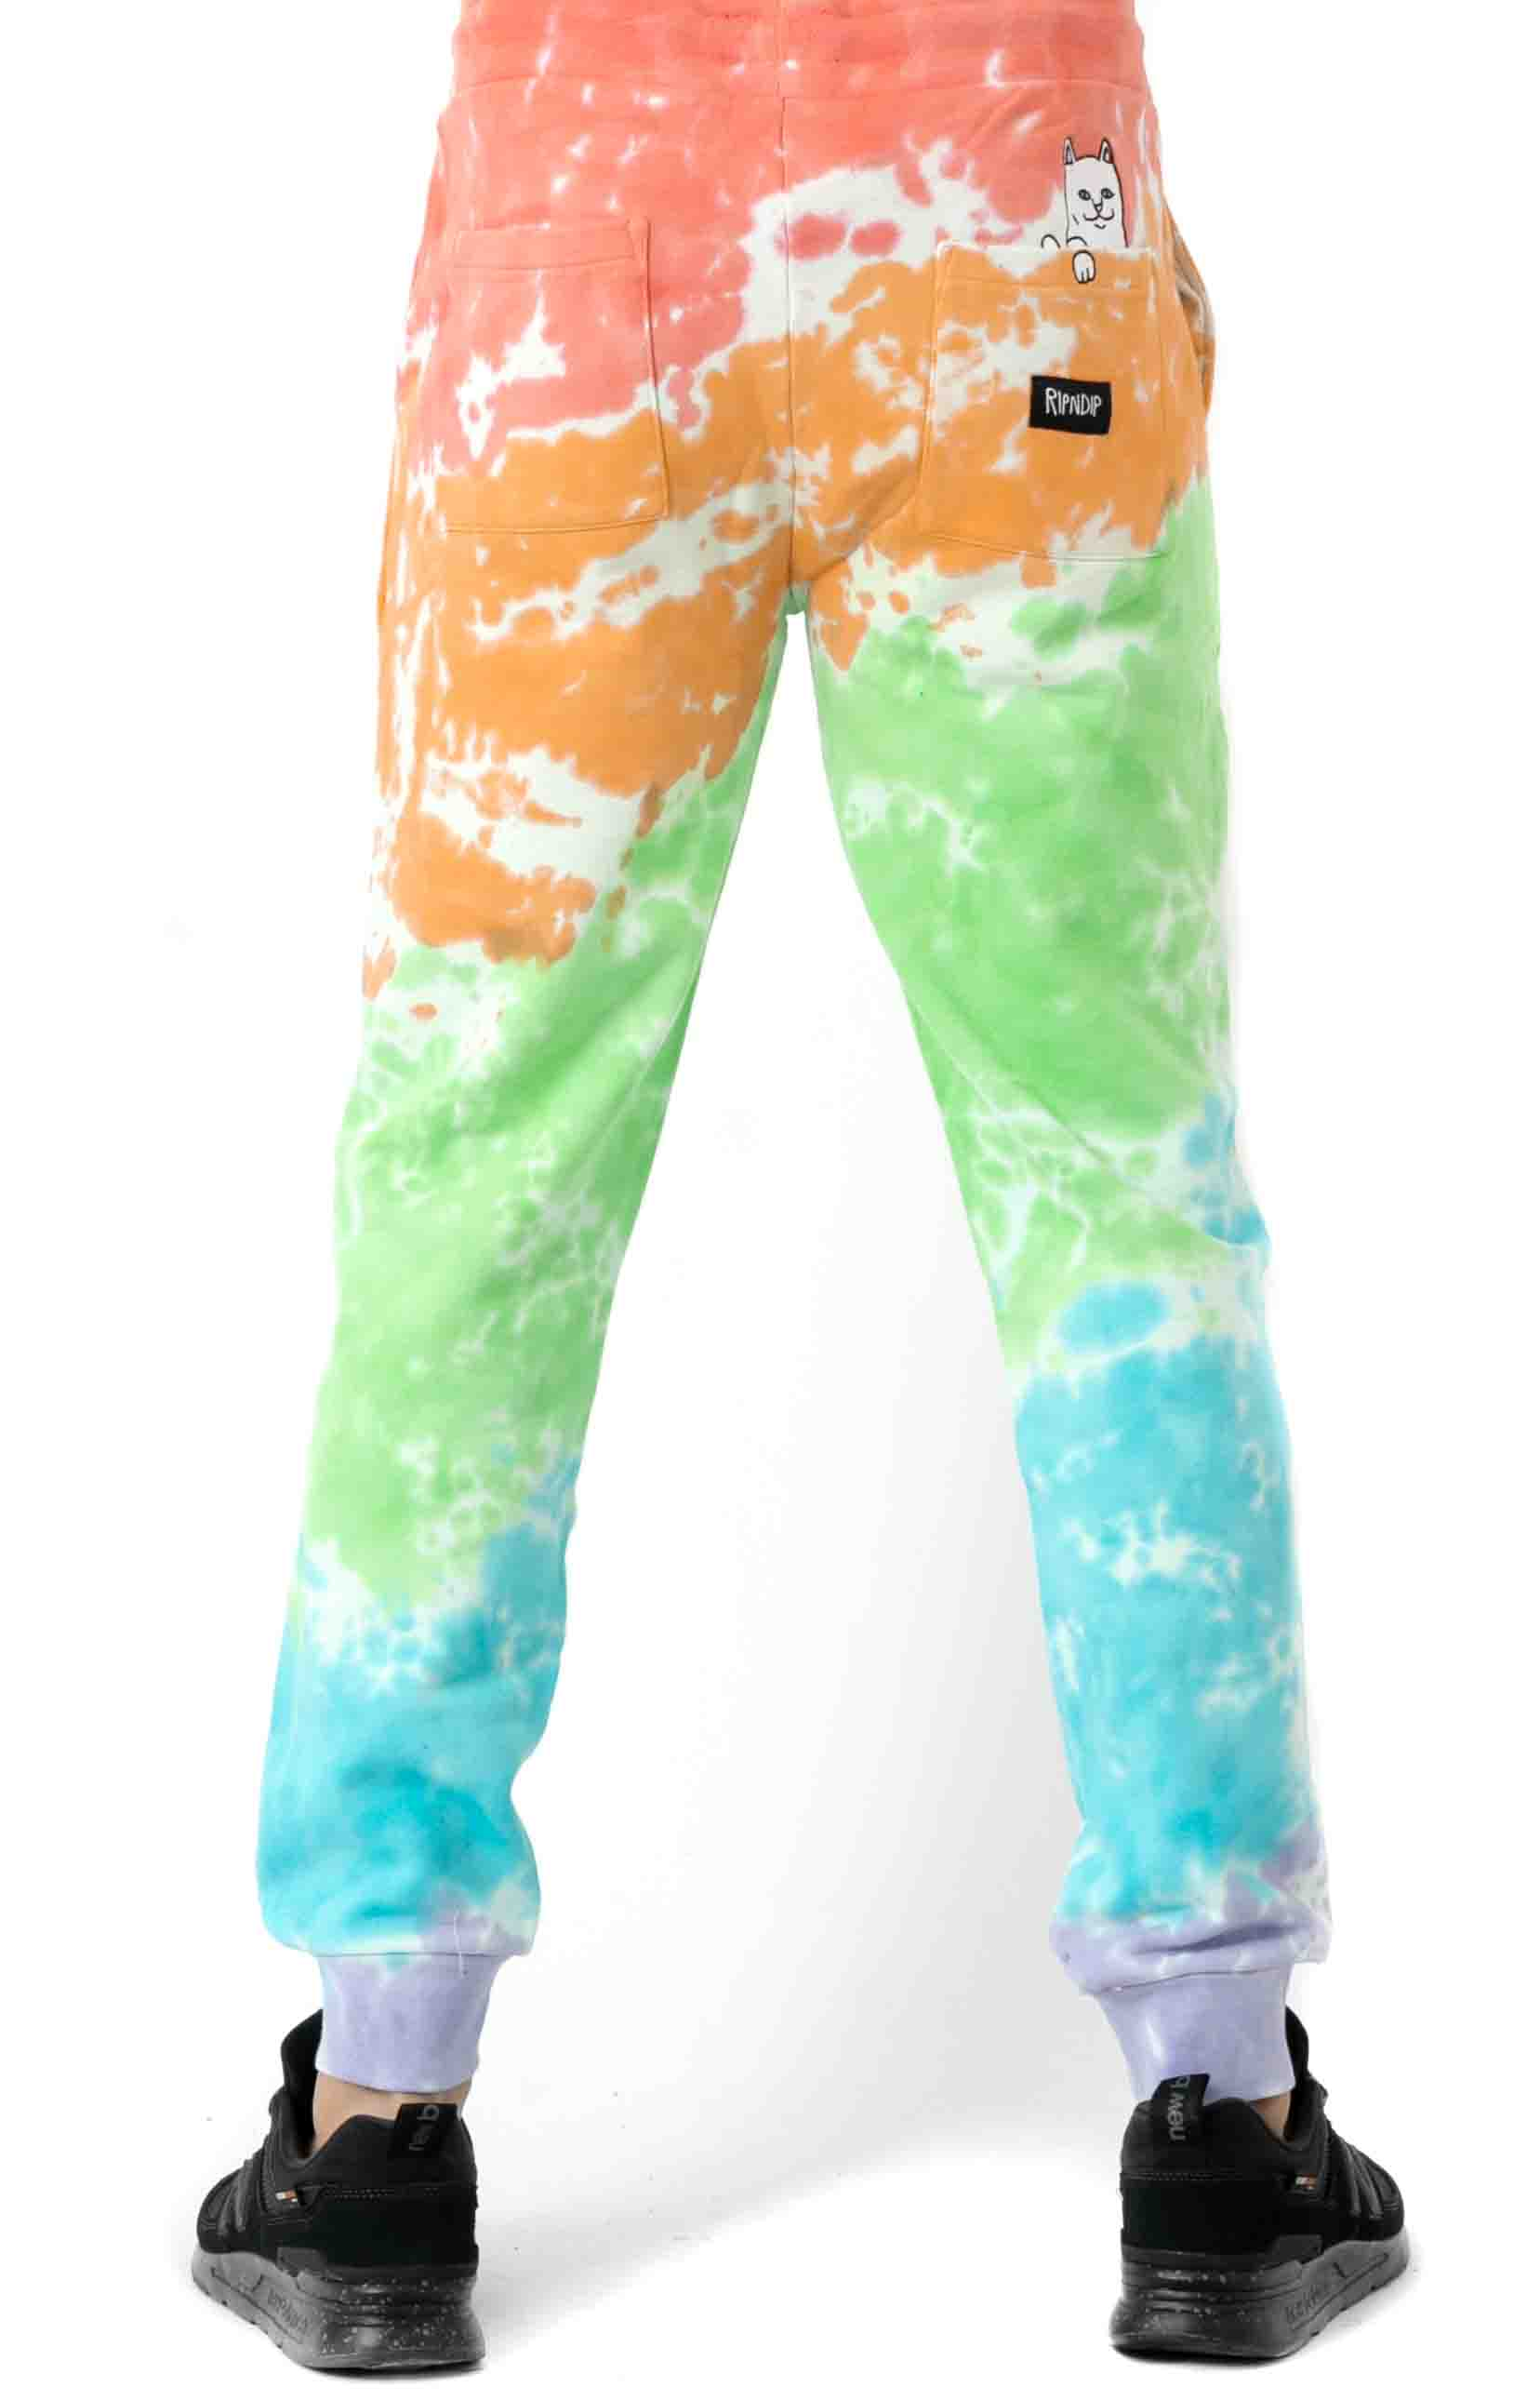 Peeking Nerm Sweatpants - Blotch Tie-Dye 3